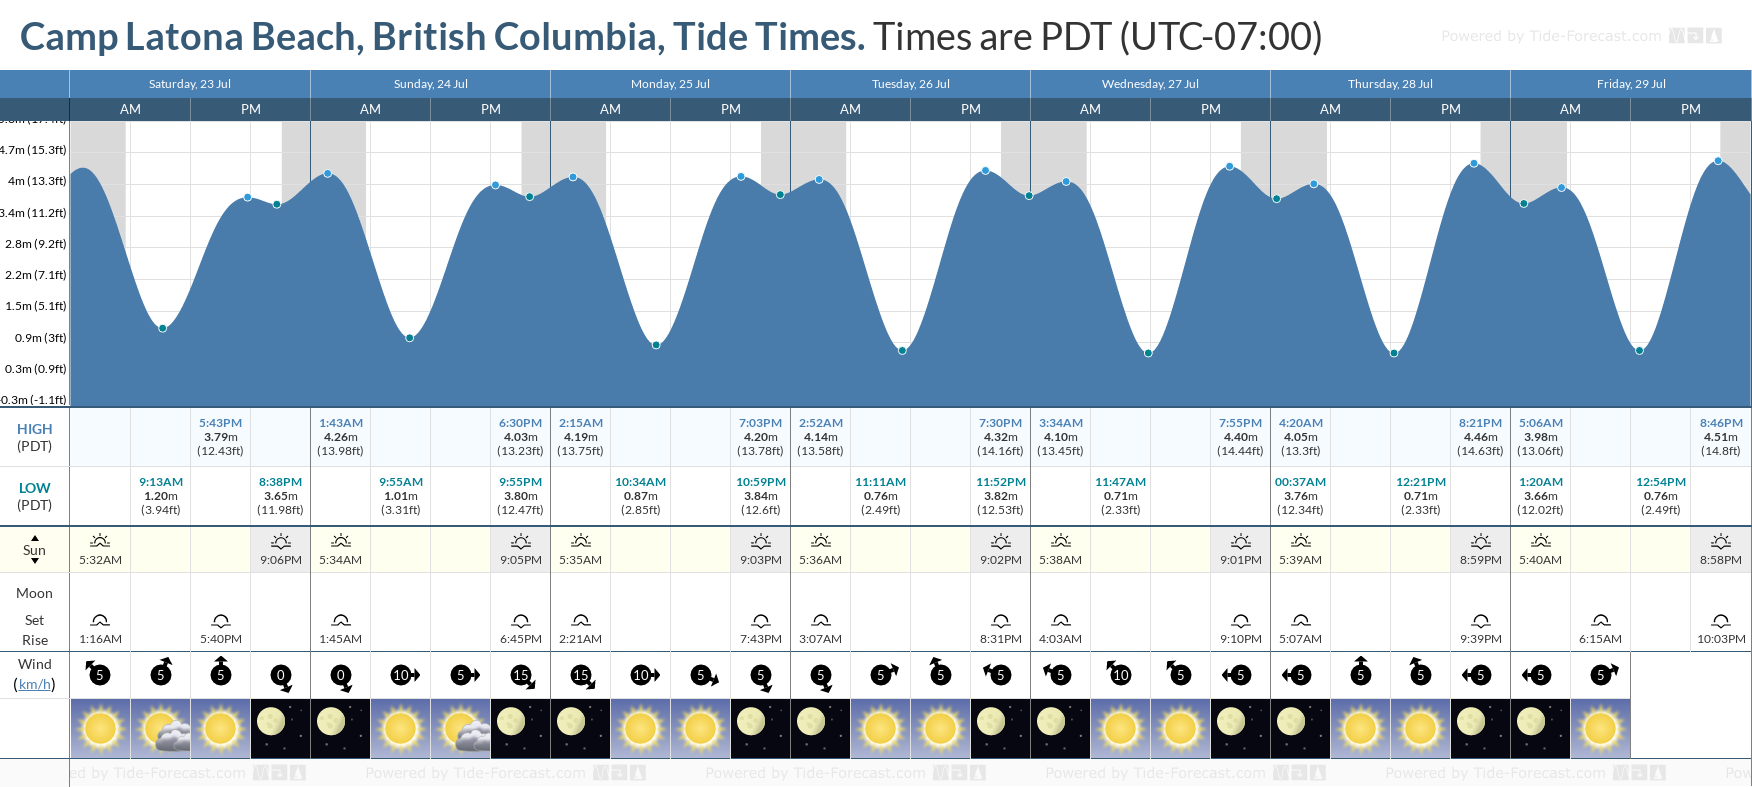 Camp Latona Beach, British Columbia Tide Chart including high and low tide tide times for the next 7 days